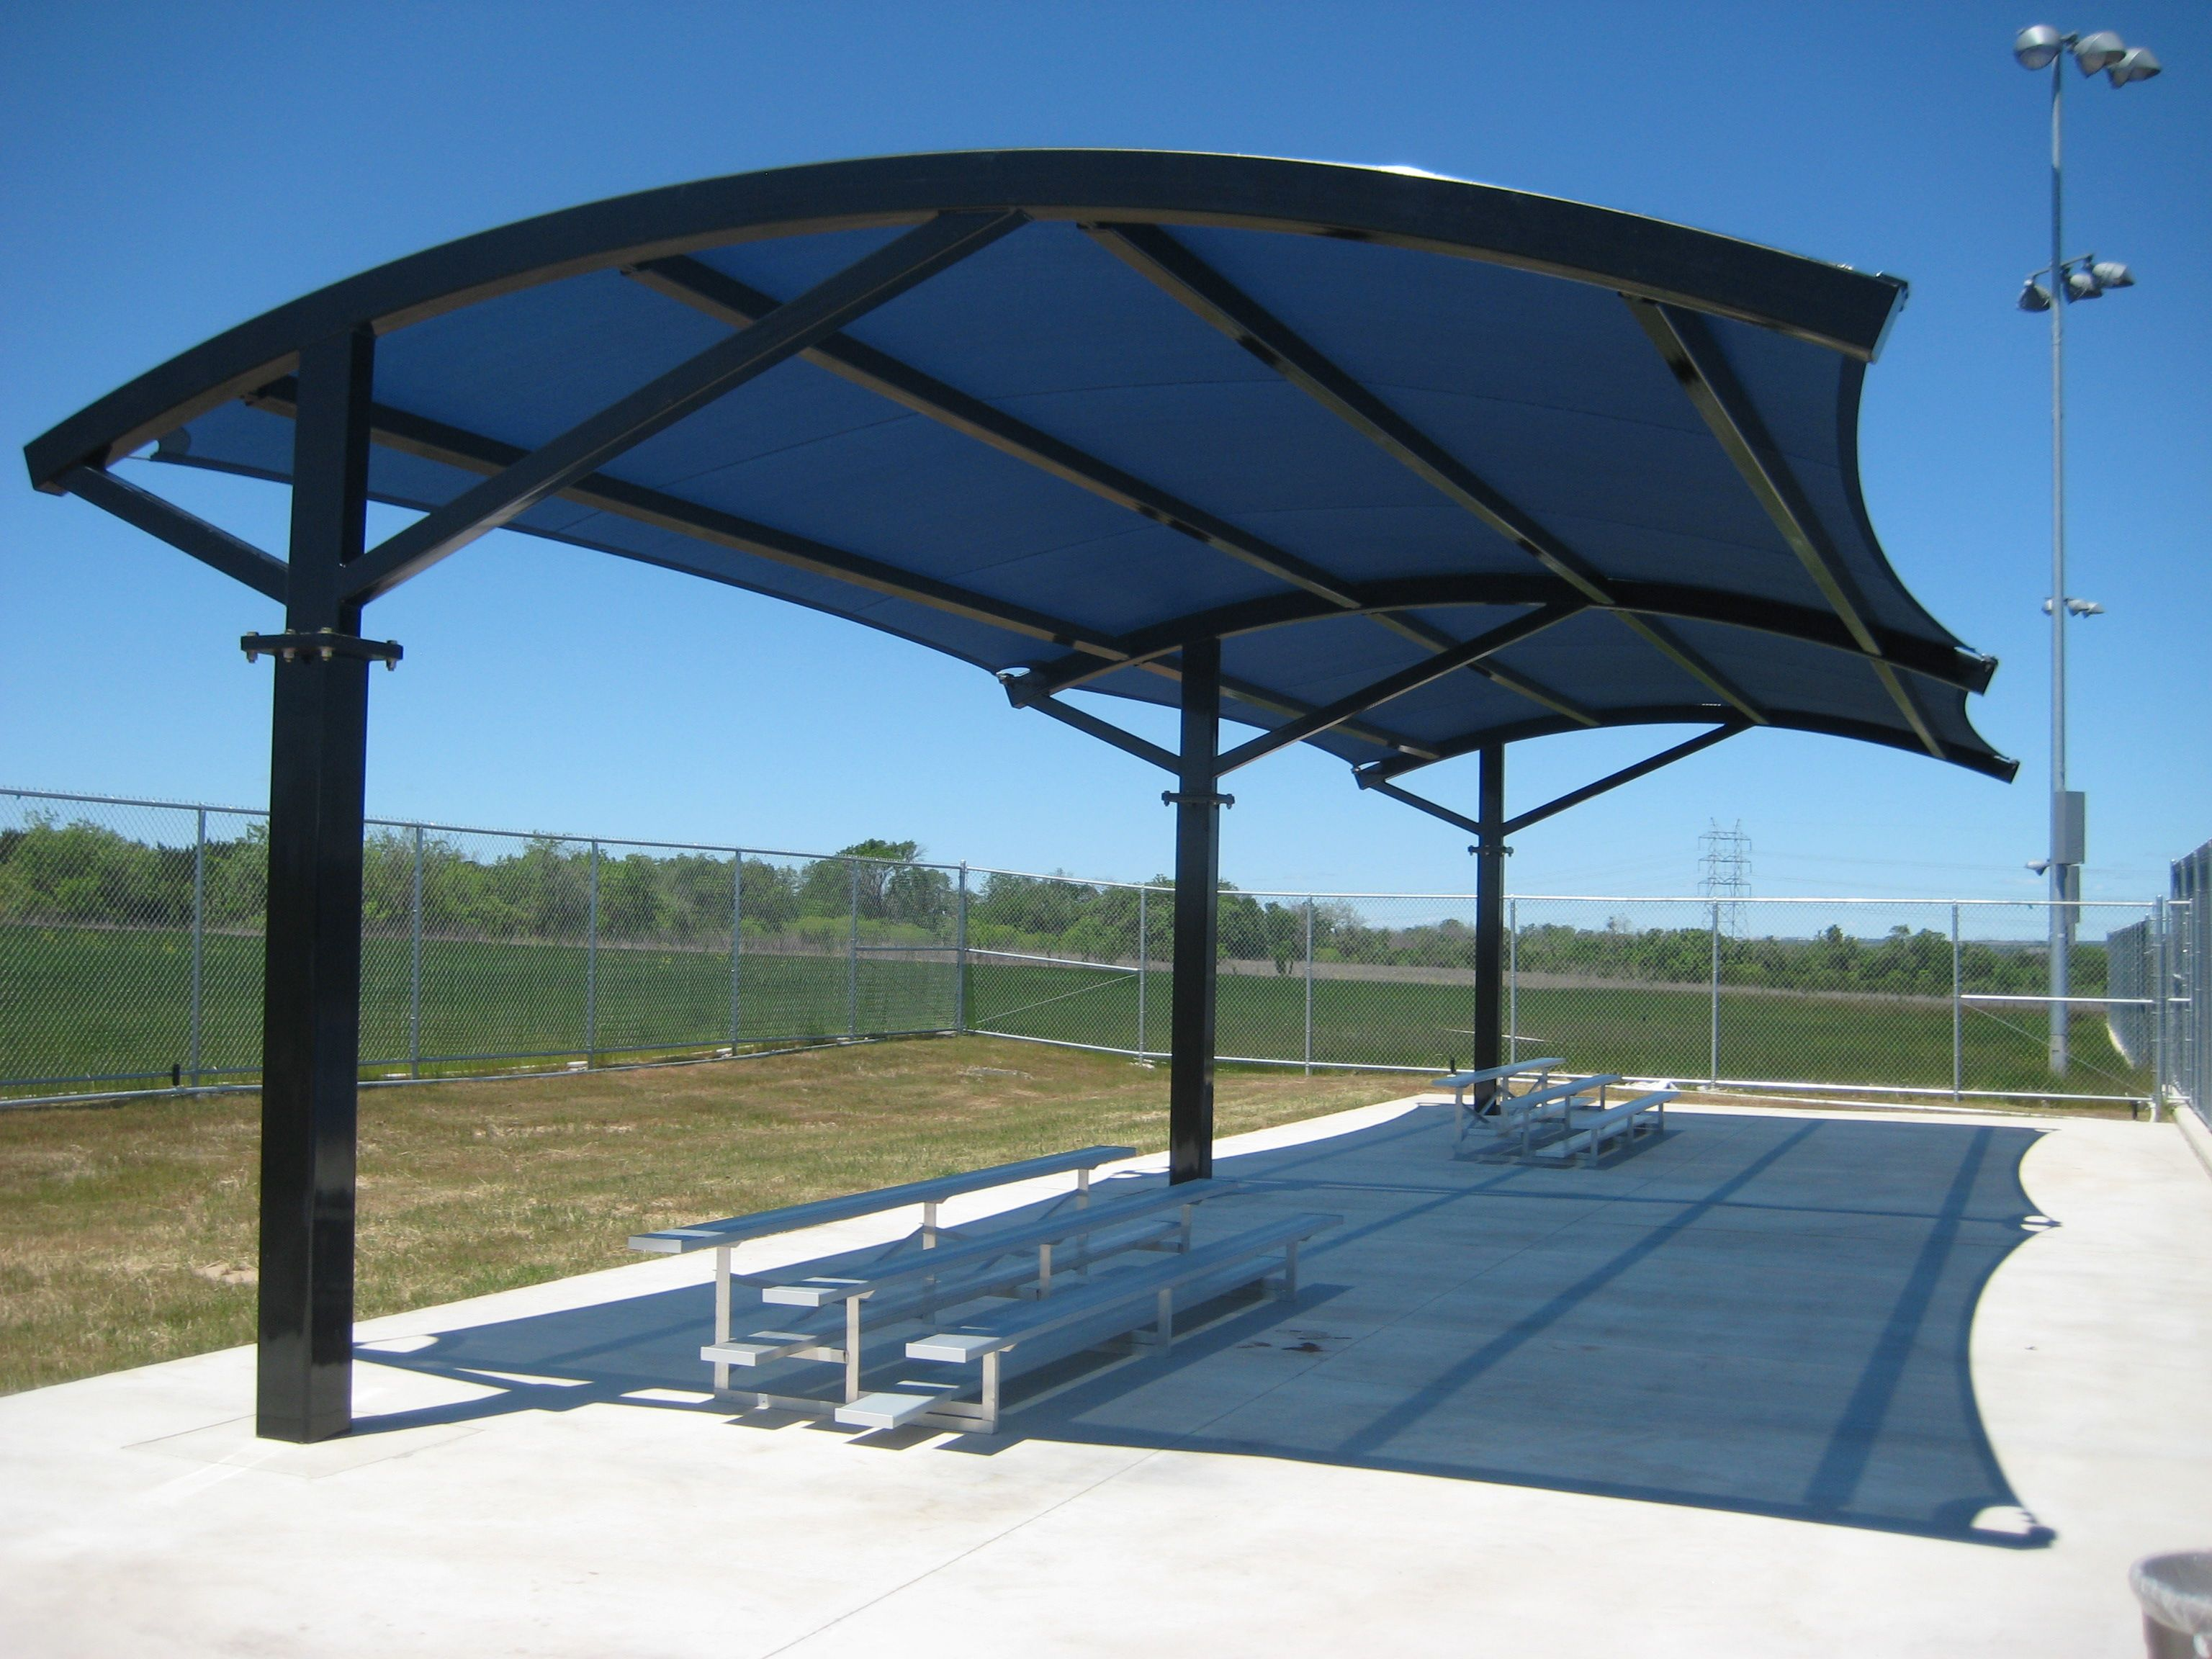 Canopy Fabric Shade Structures Patio Shade Structures Cabins And Outdoor Living